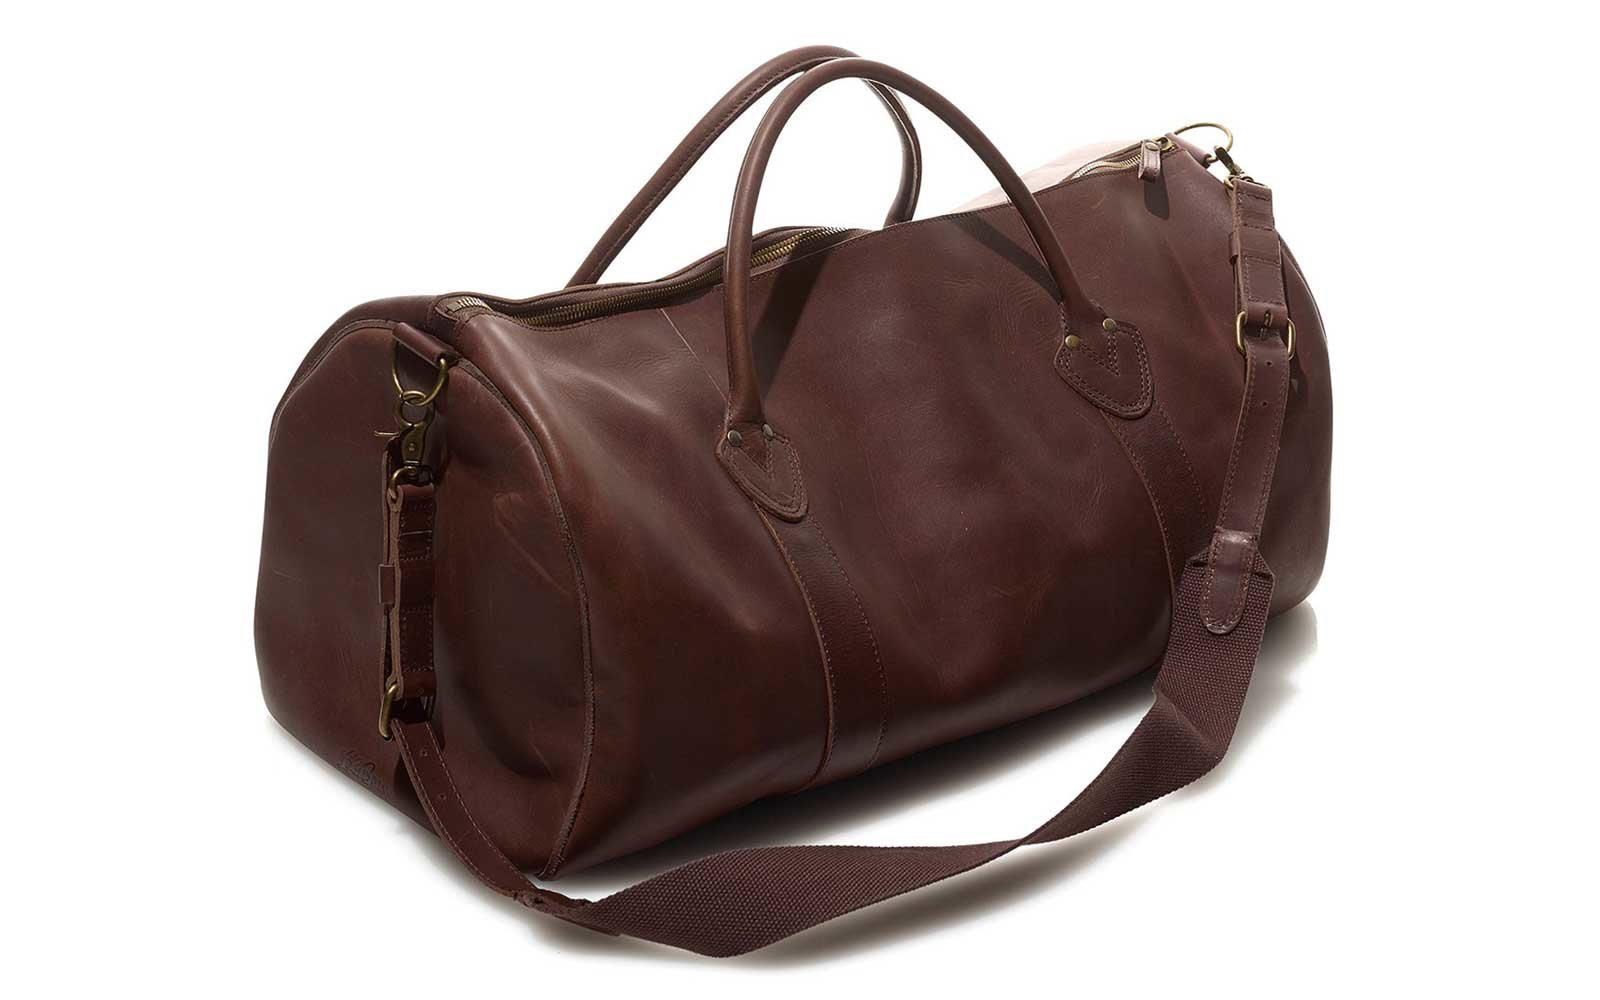 6cf8fffacbdb L.L.Bean Signature Leather Duffel